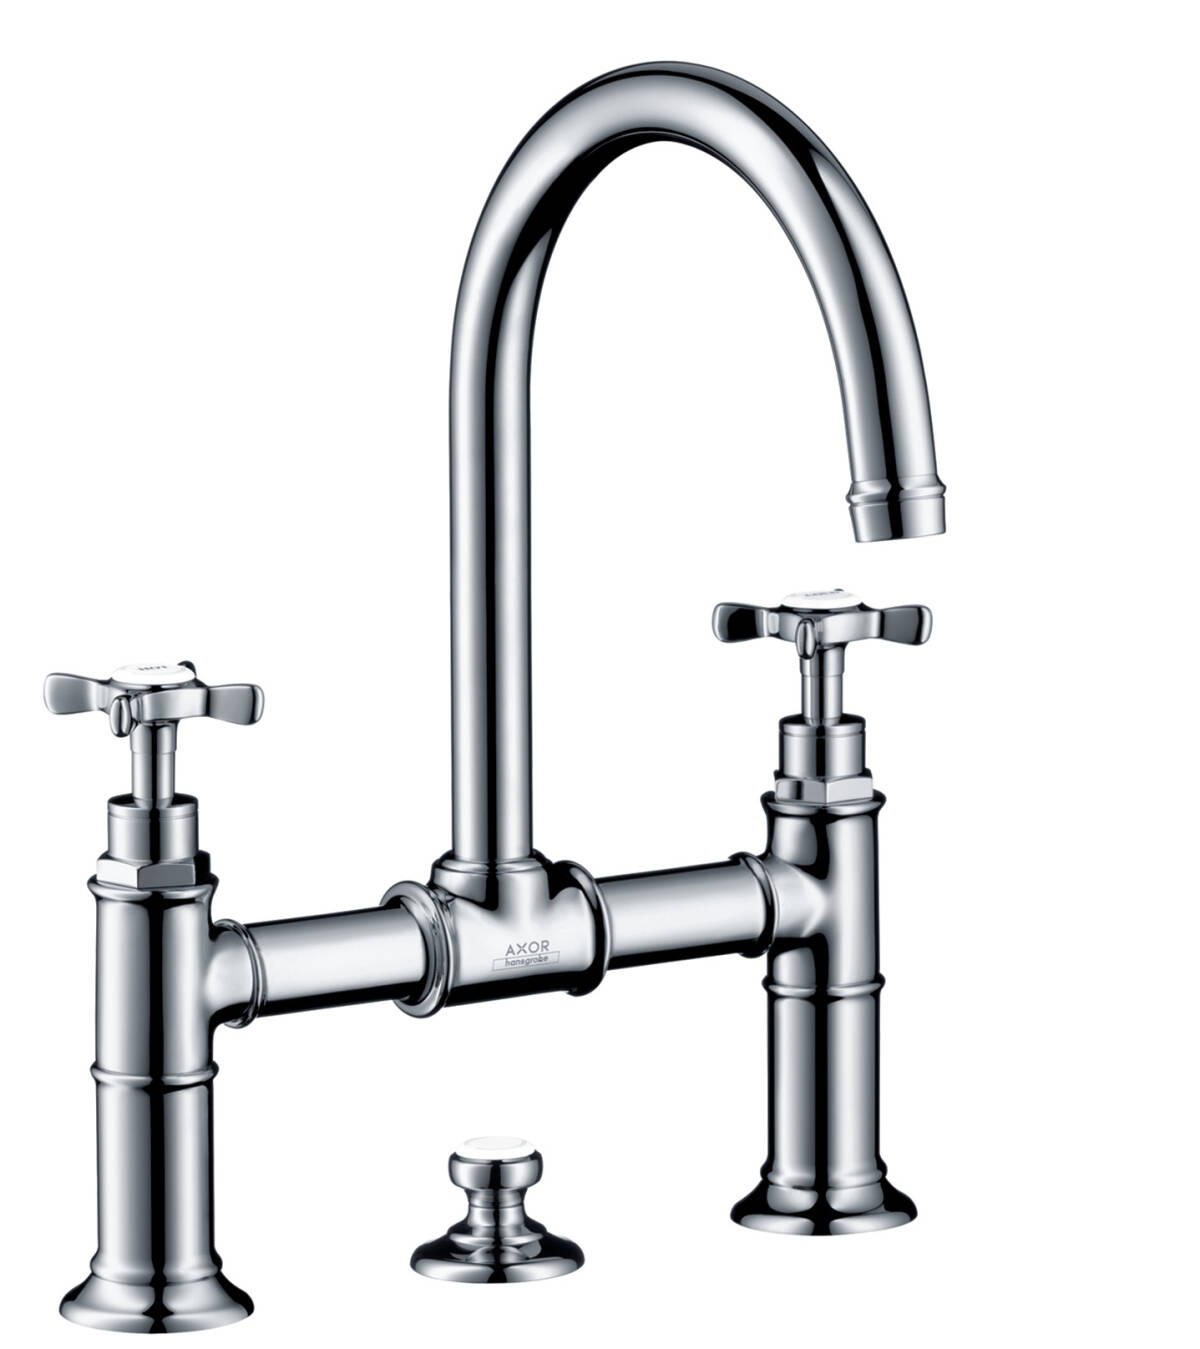 2-handle basin mixer 220 with cross handles and pop-up waste set, Chrome, 16510000